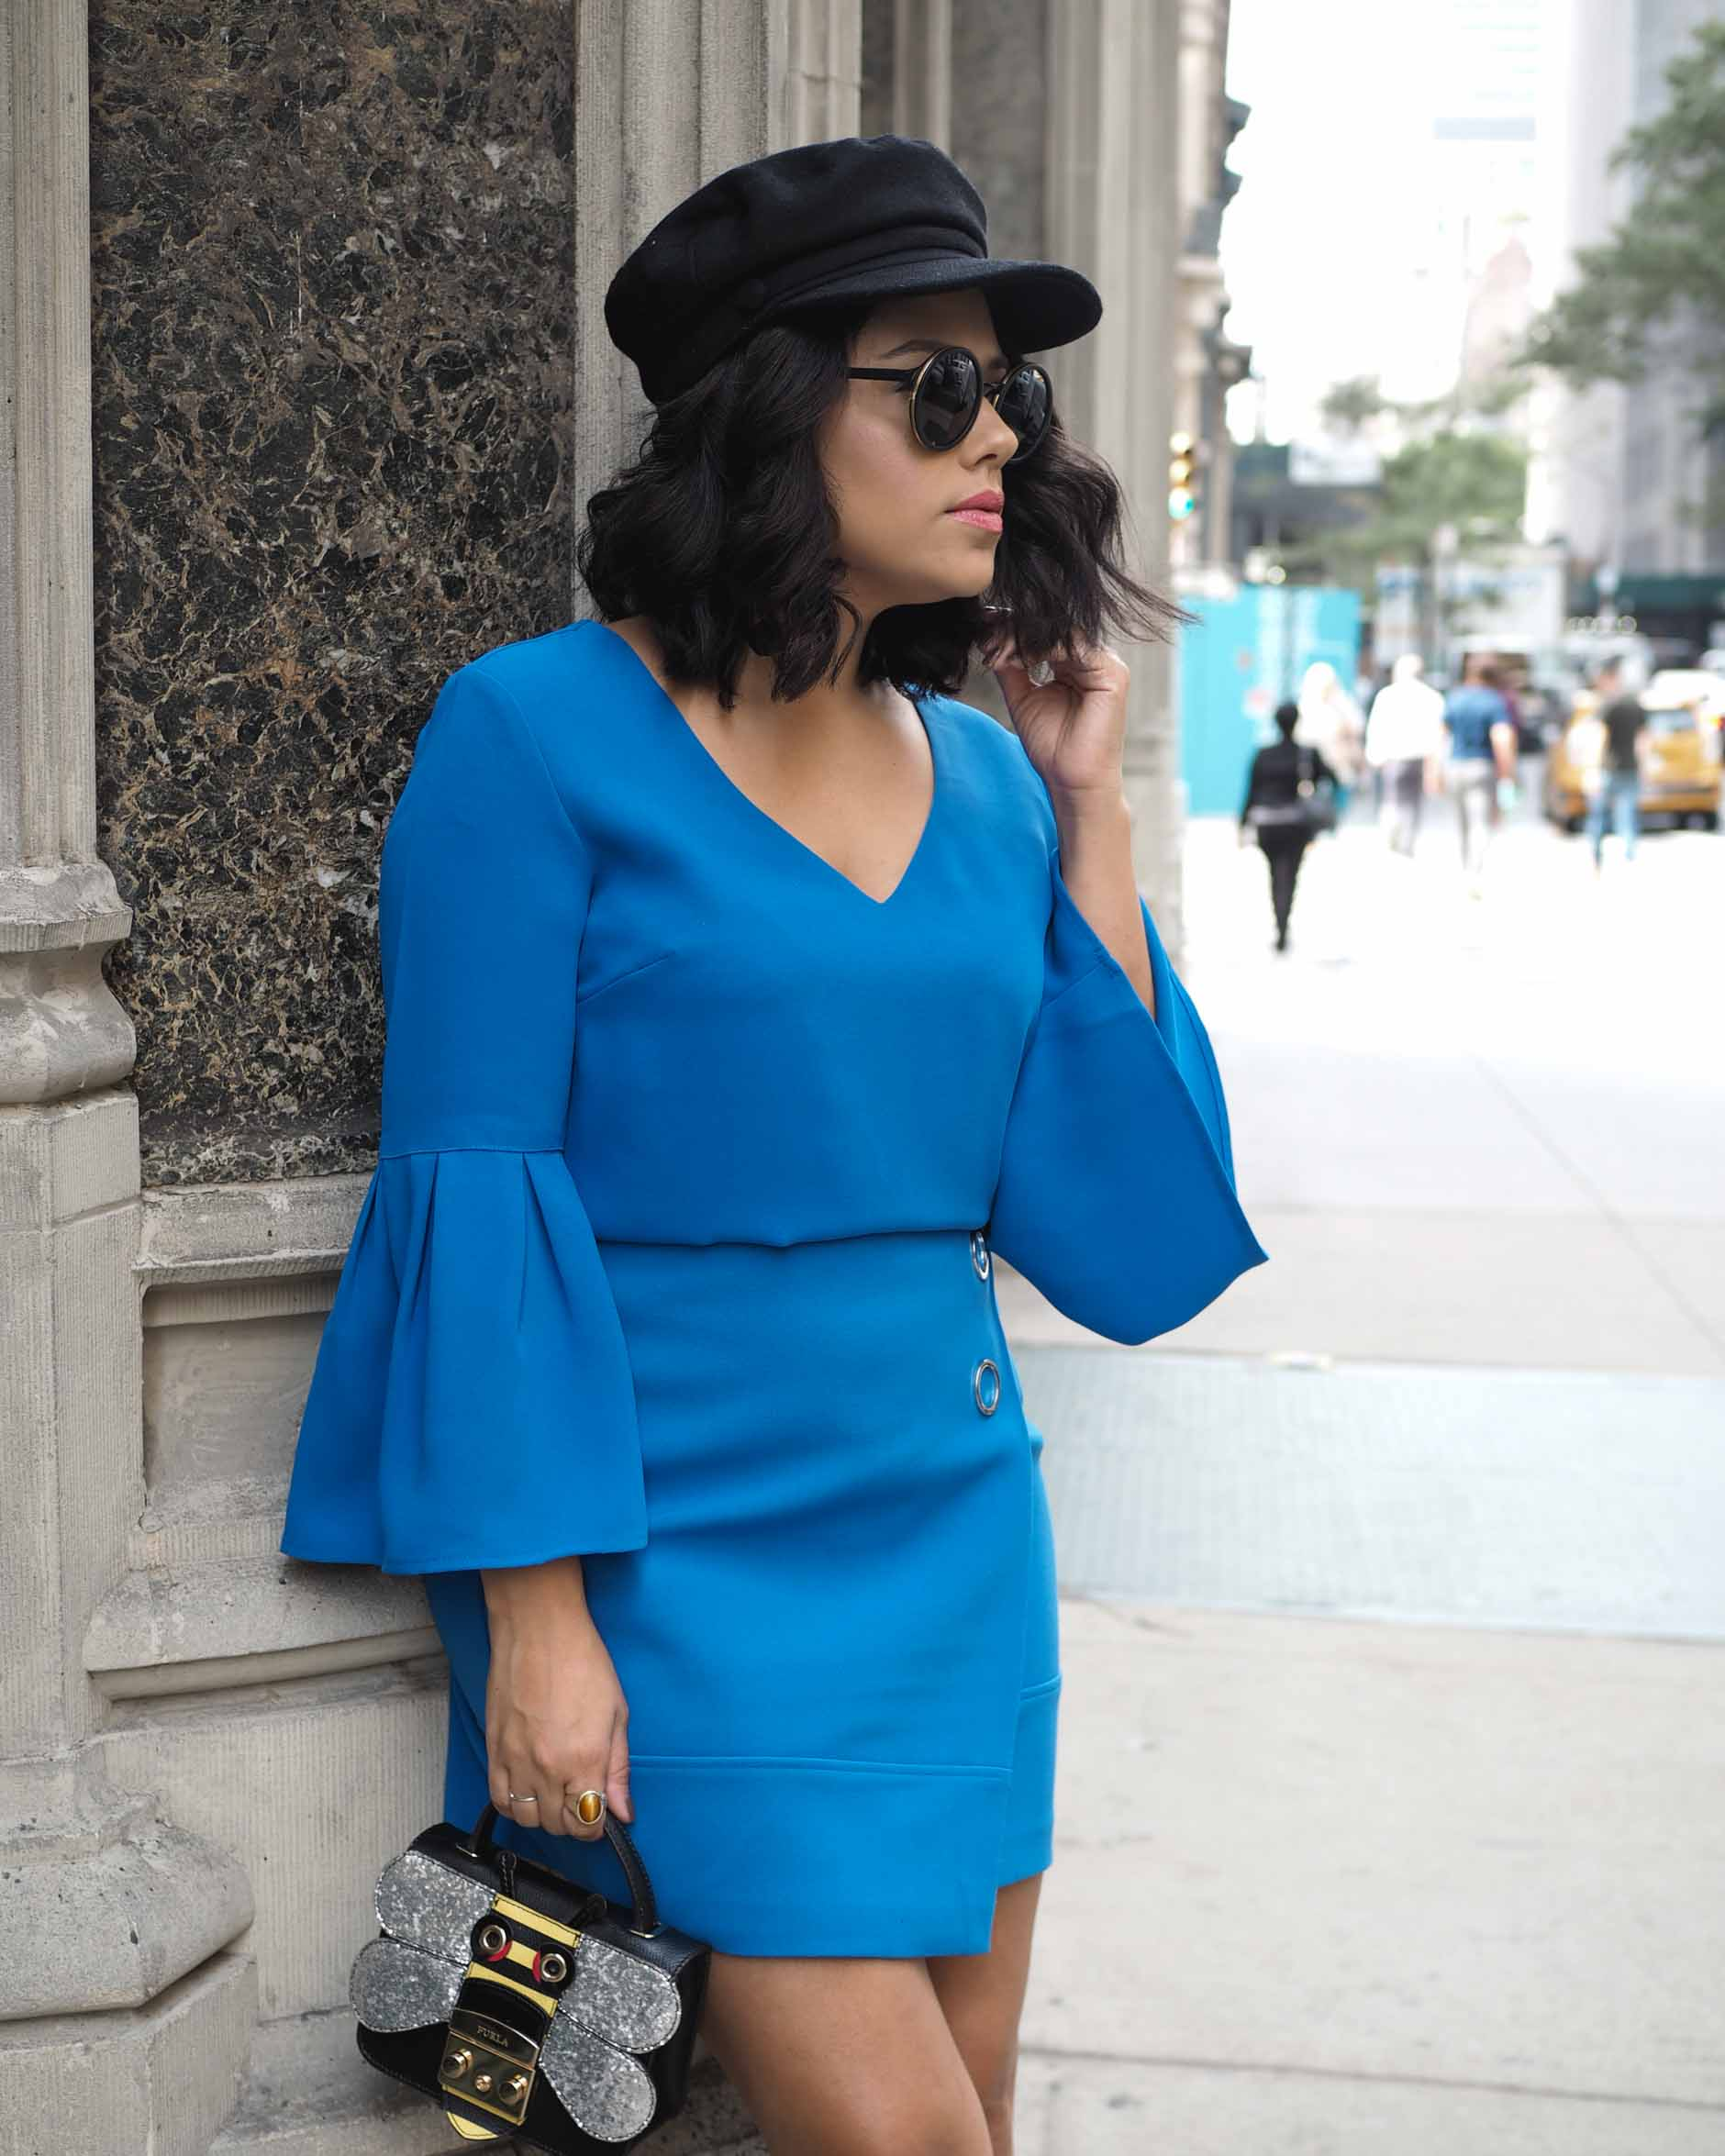 naty michele wearing black and blue for nyfw